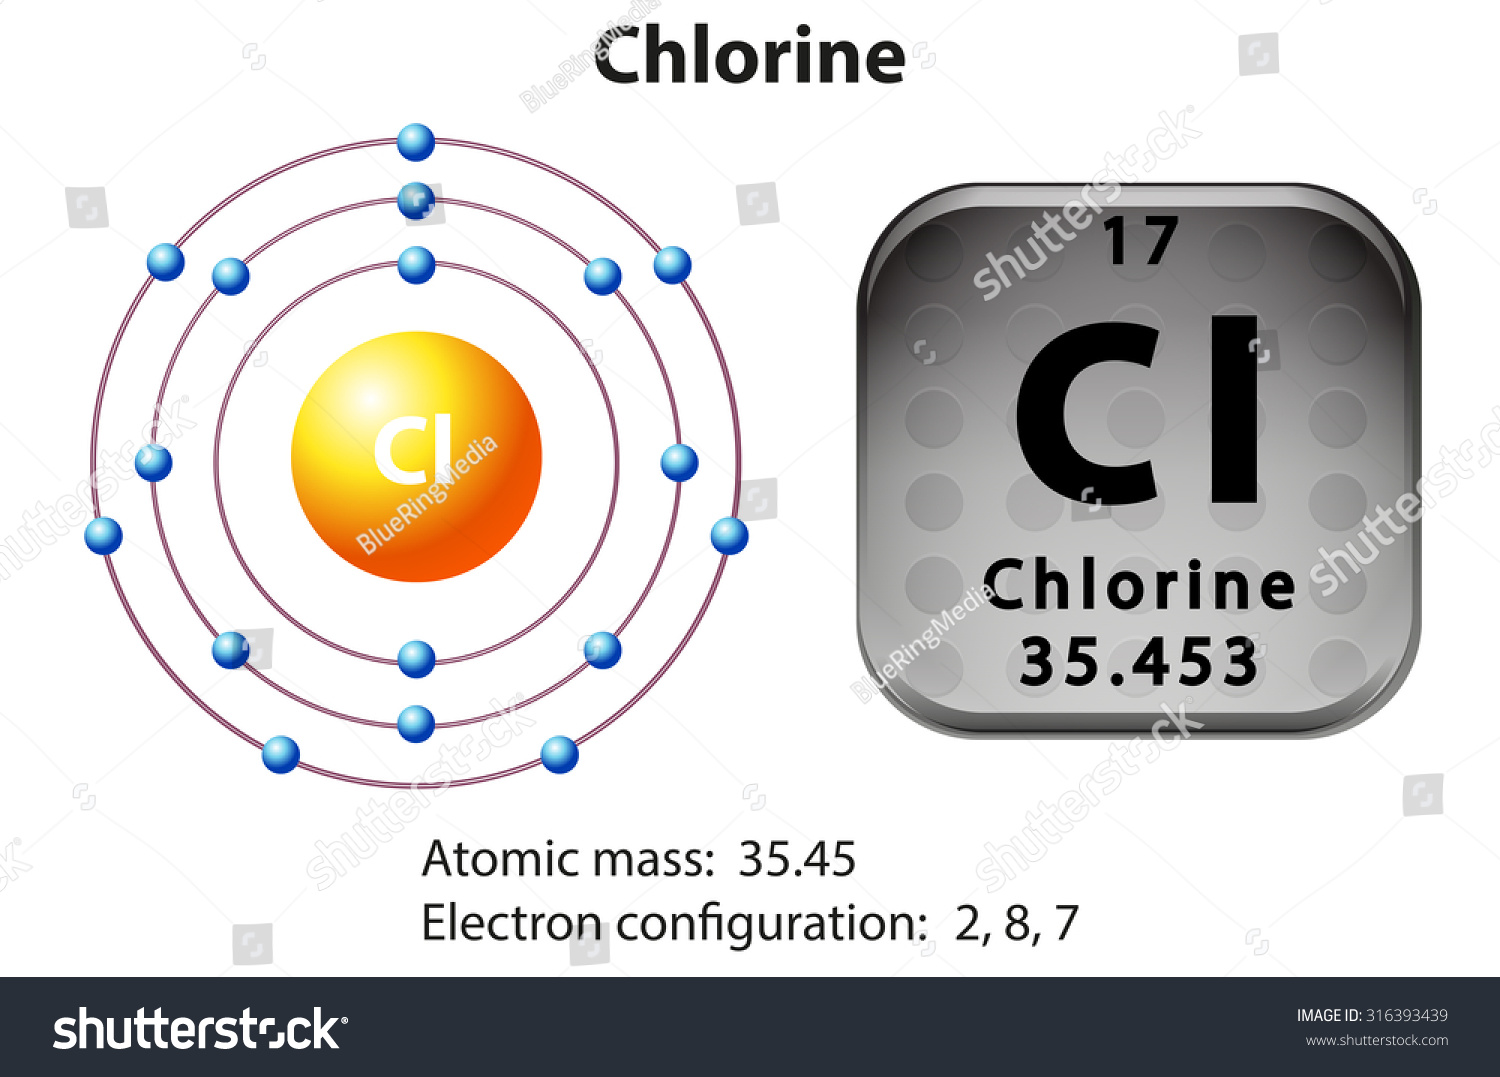 Symbol Electron Diagram Chlorine Illustration Stock Vector 316393439